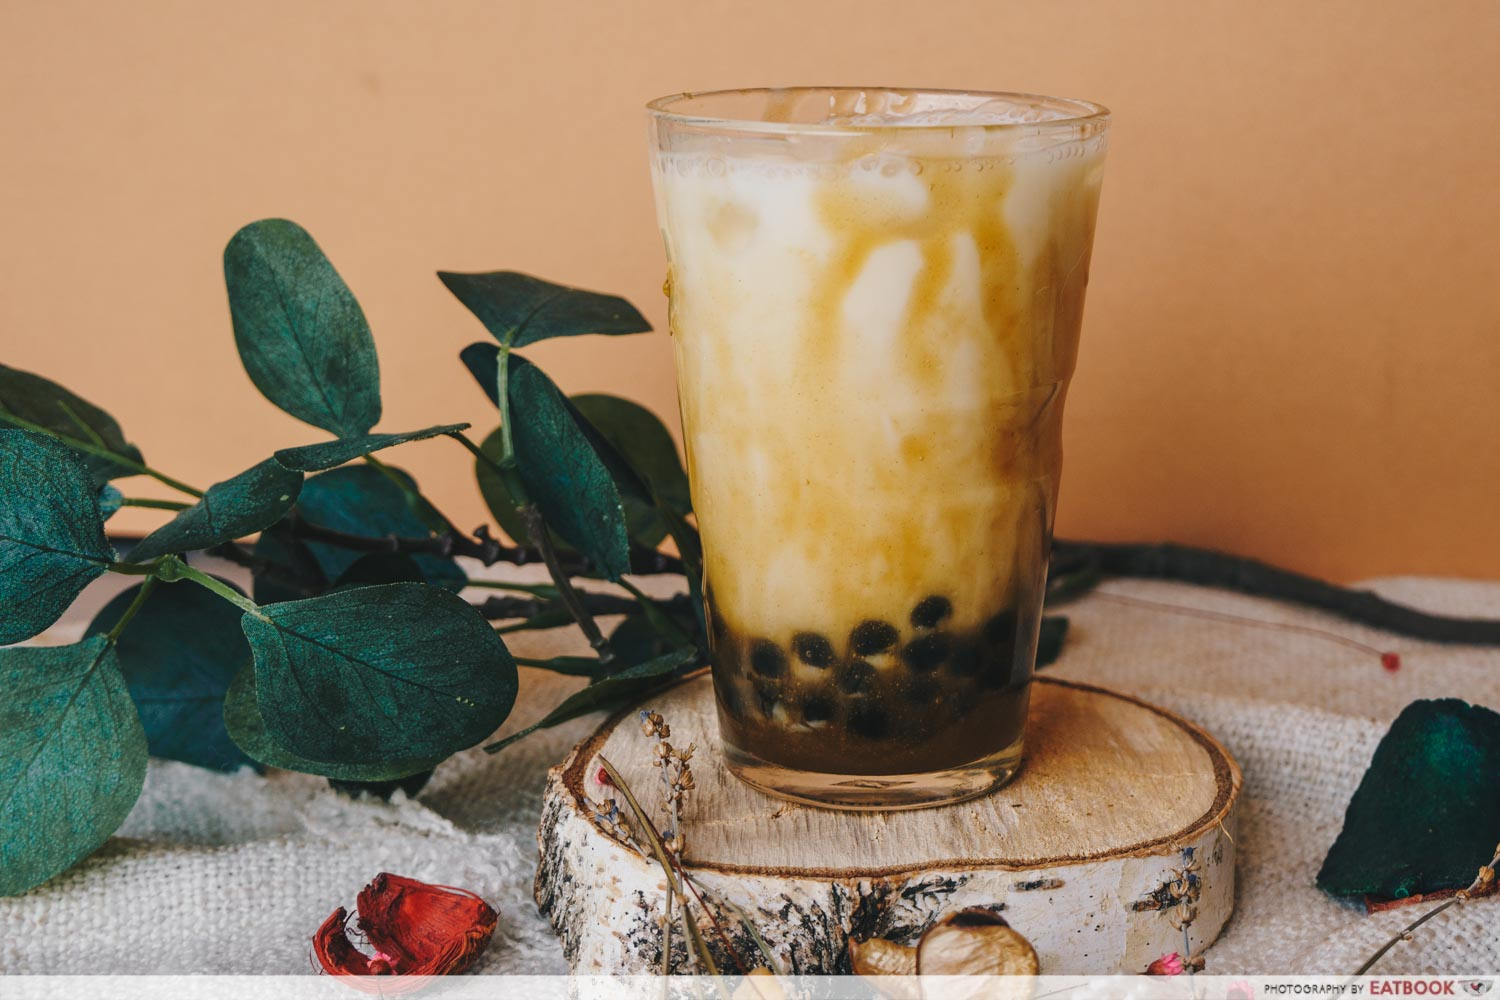 3 Bubble Tea Recipes - Brown sugar fresh milk recipie